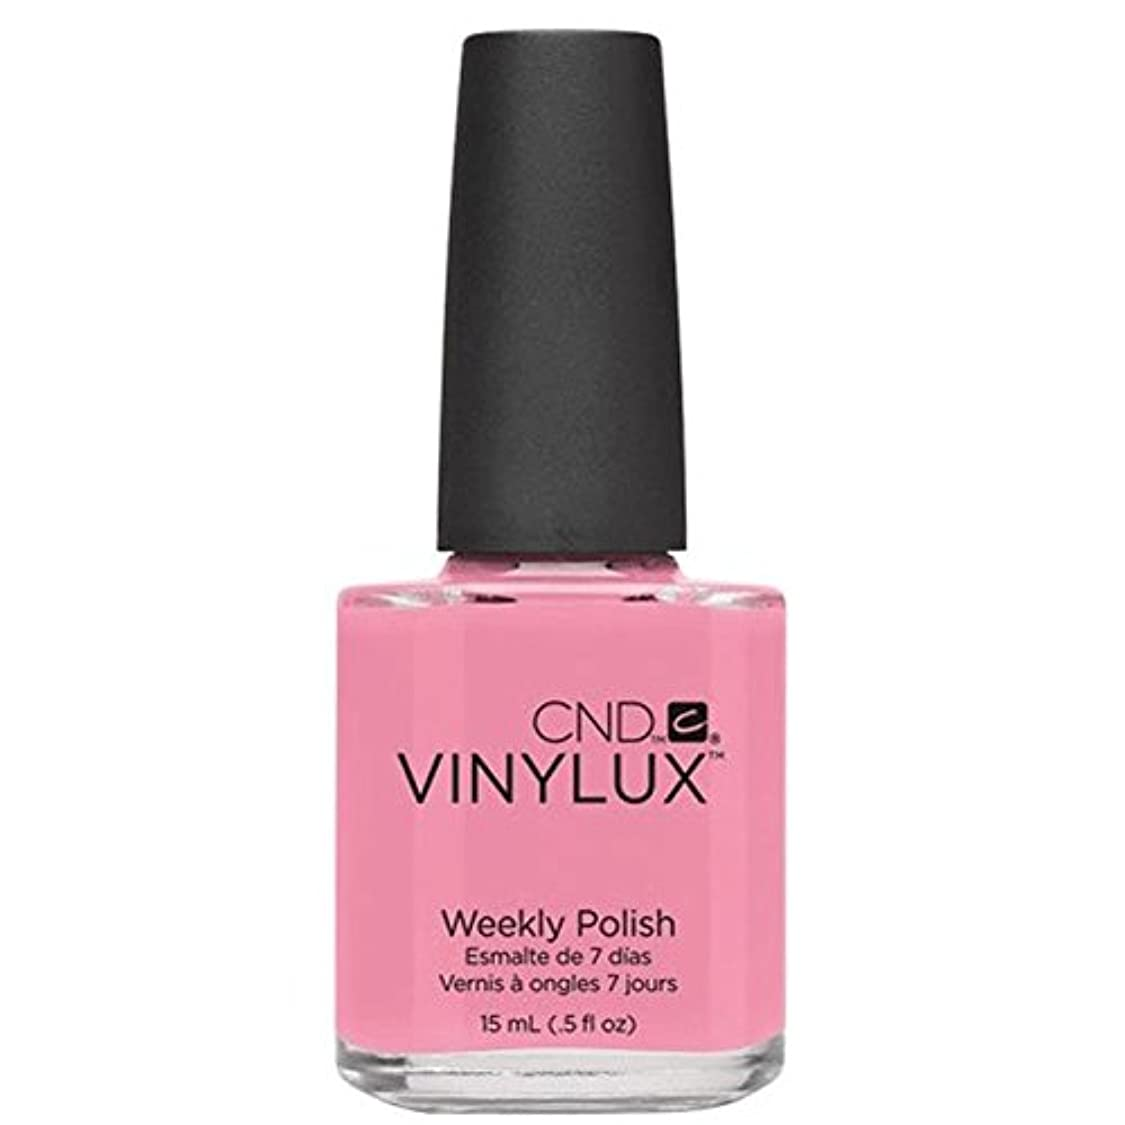 テレックス自分のためにホイストCND Vinylux Manicure Lacquer _  Stawberry Smoothie #150_15ml (0.5oz)